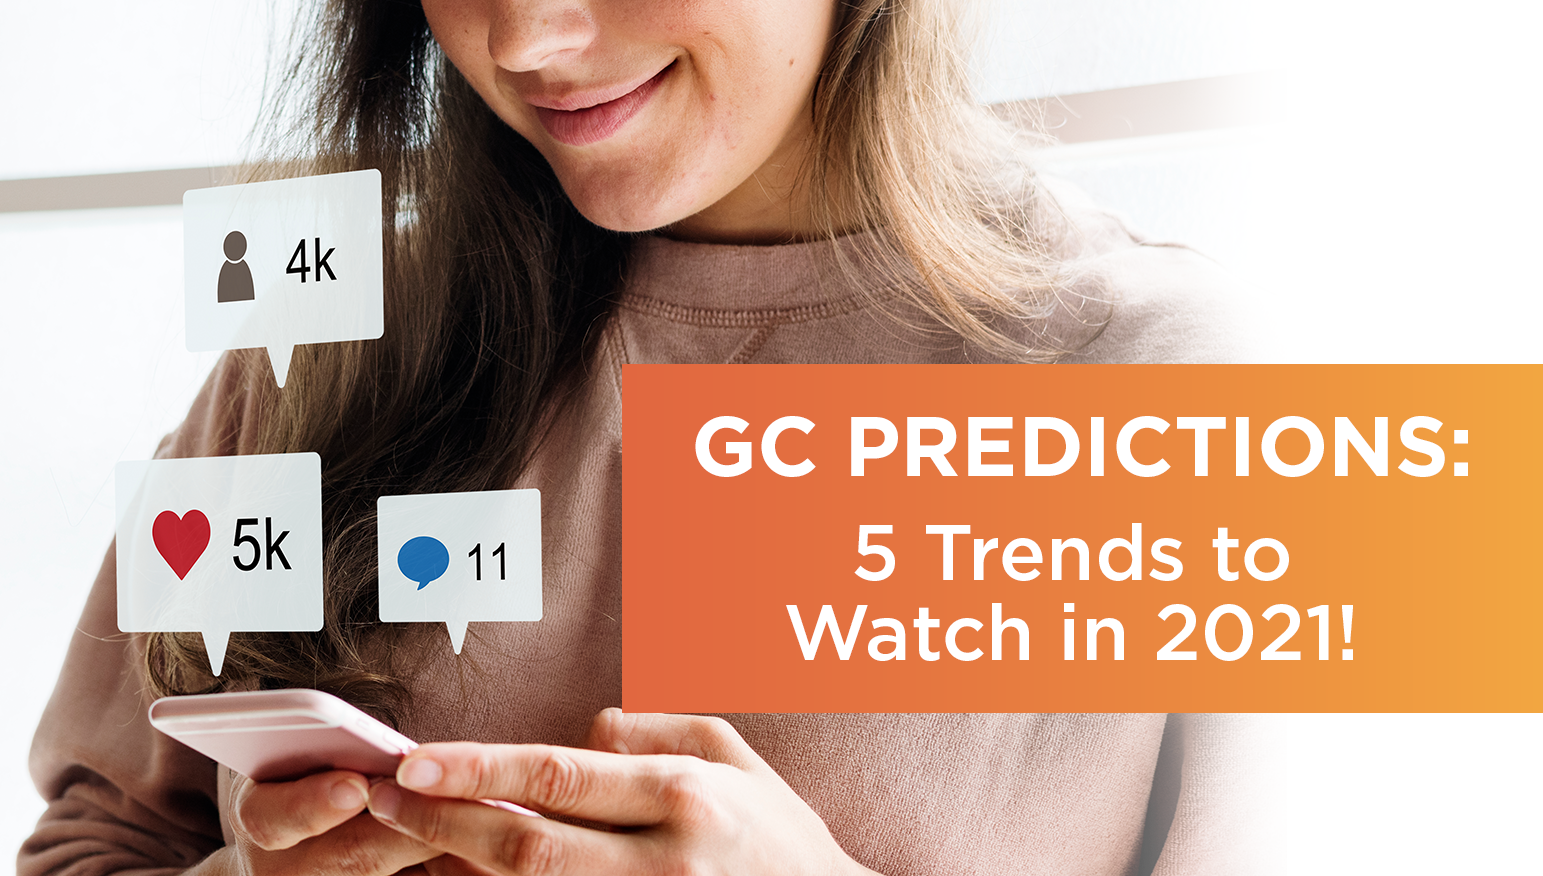 GC Predictions: 5 Trends to Watch in 2021!